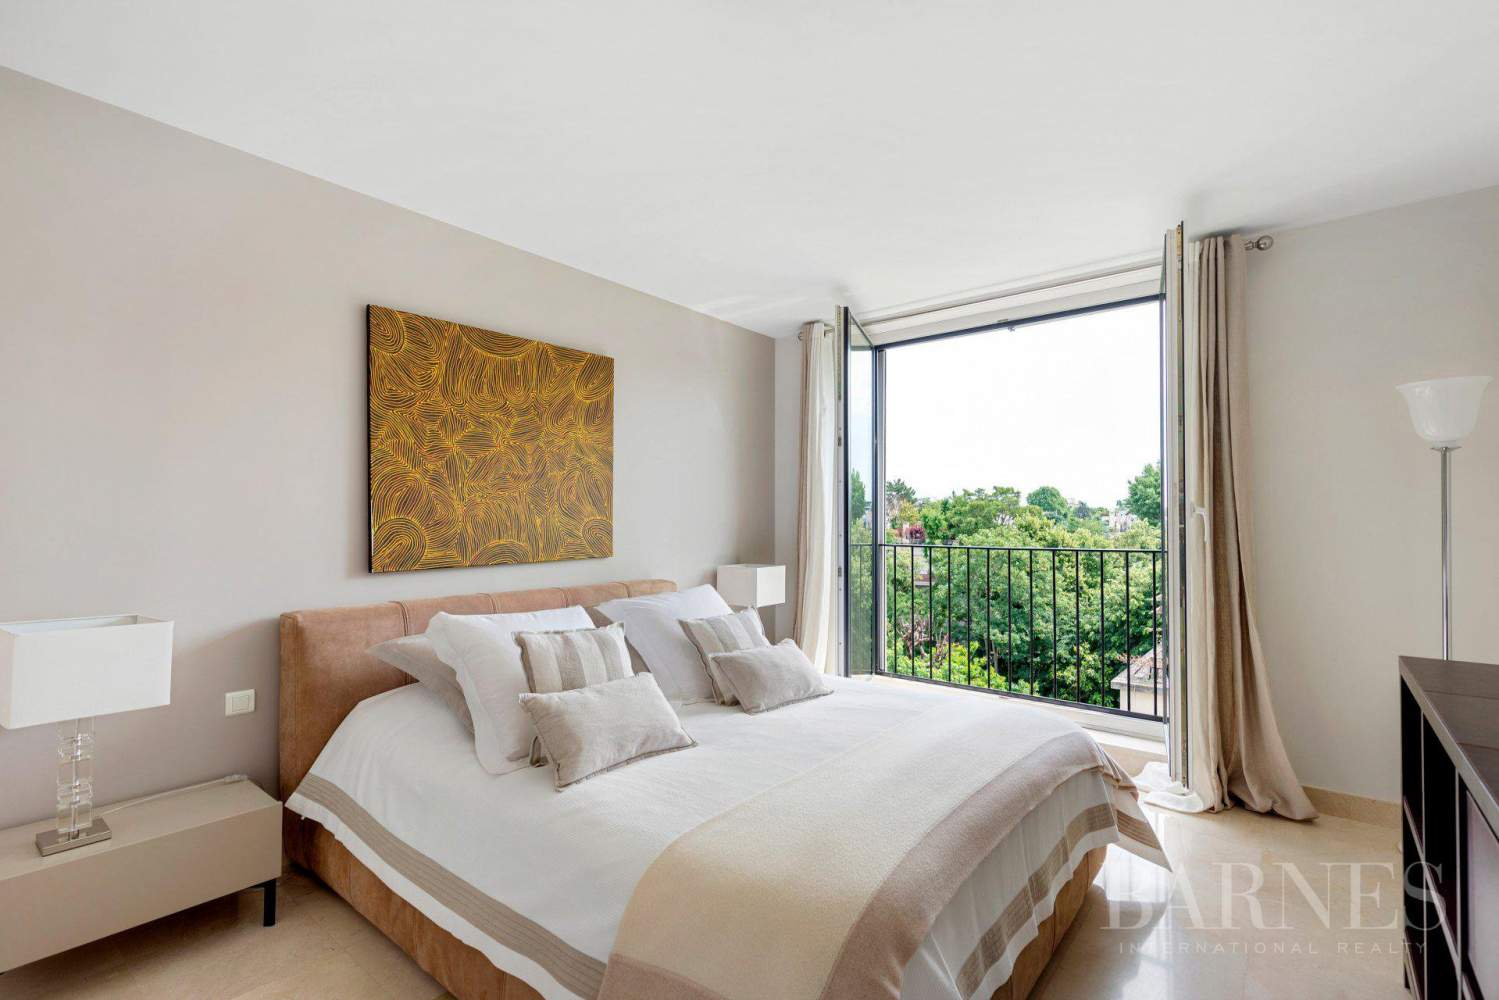 EXCLUSIVE - NEUILLY SAINT-JAMES - APARTMENT WITH RECEPTION ROOMS - UPPER FLOOR - PANORAMIC VIEWS picture 11